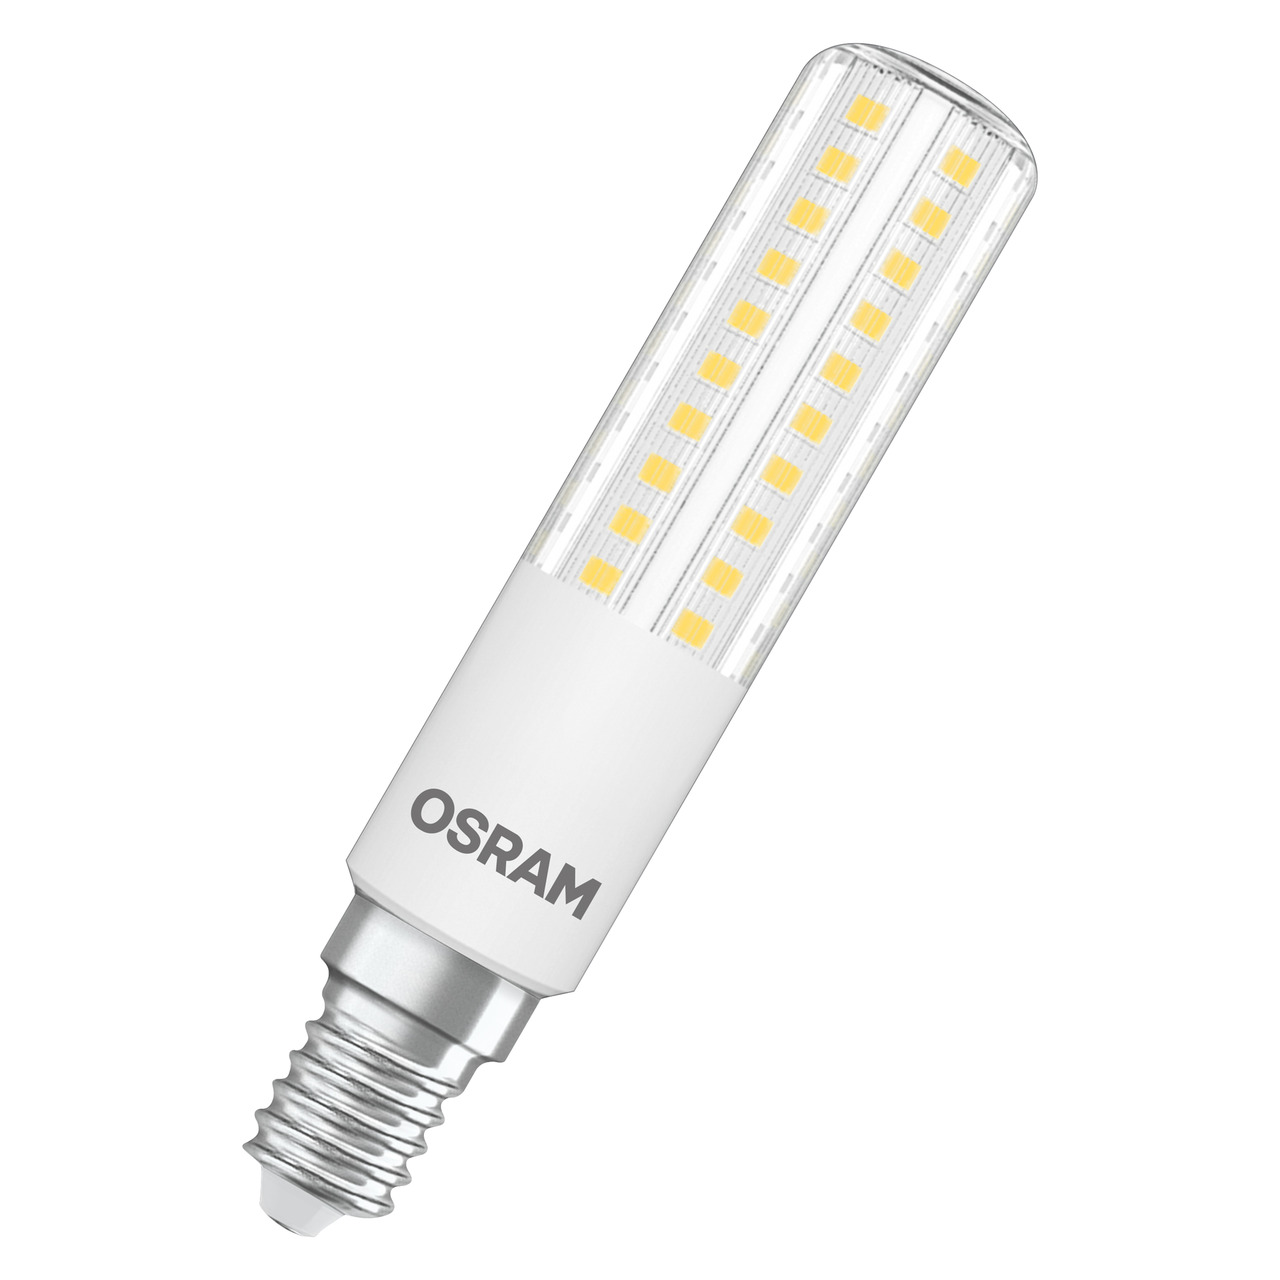 OSRAM 7-5-W-LED-Lampe T20- E14- 806 lm- warmweiss- 320- dimmbar